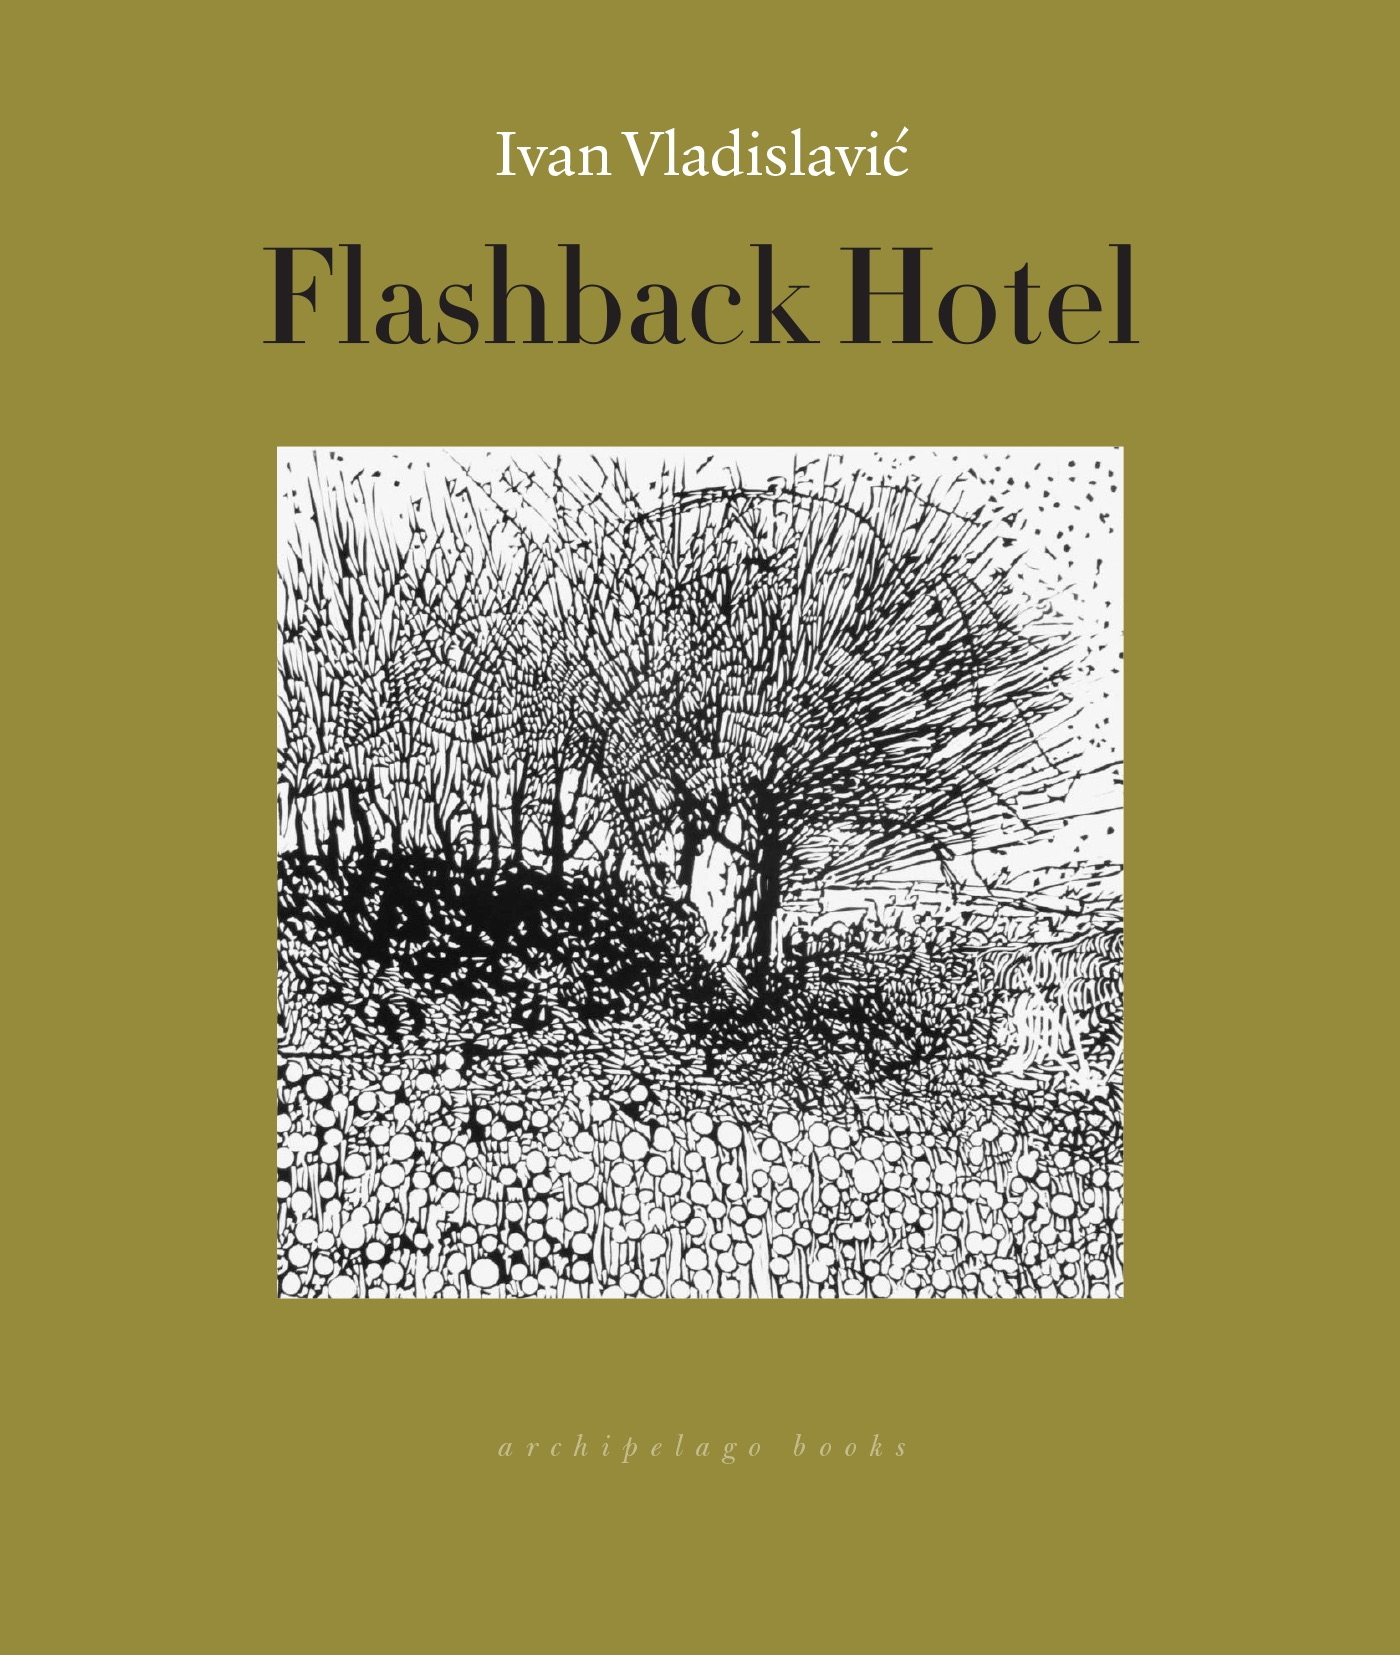 Flahback Hotel.Archipelago cover